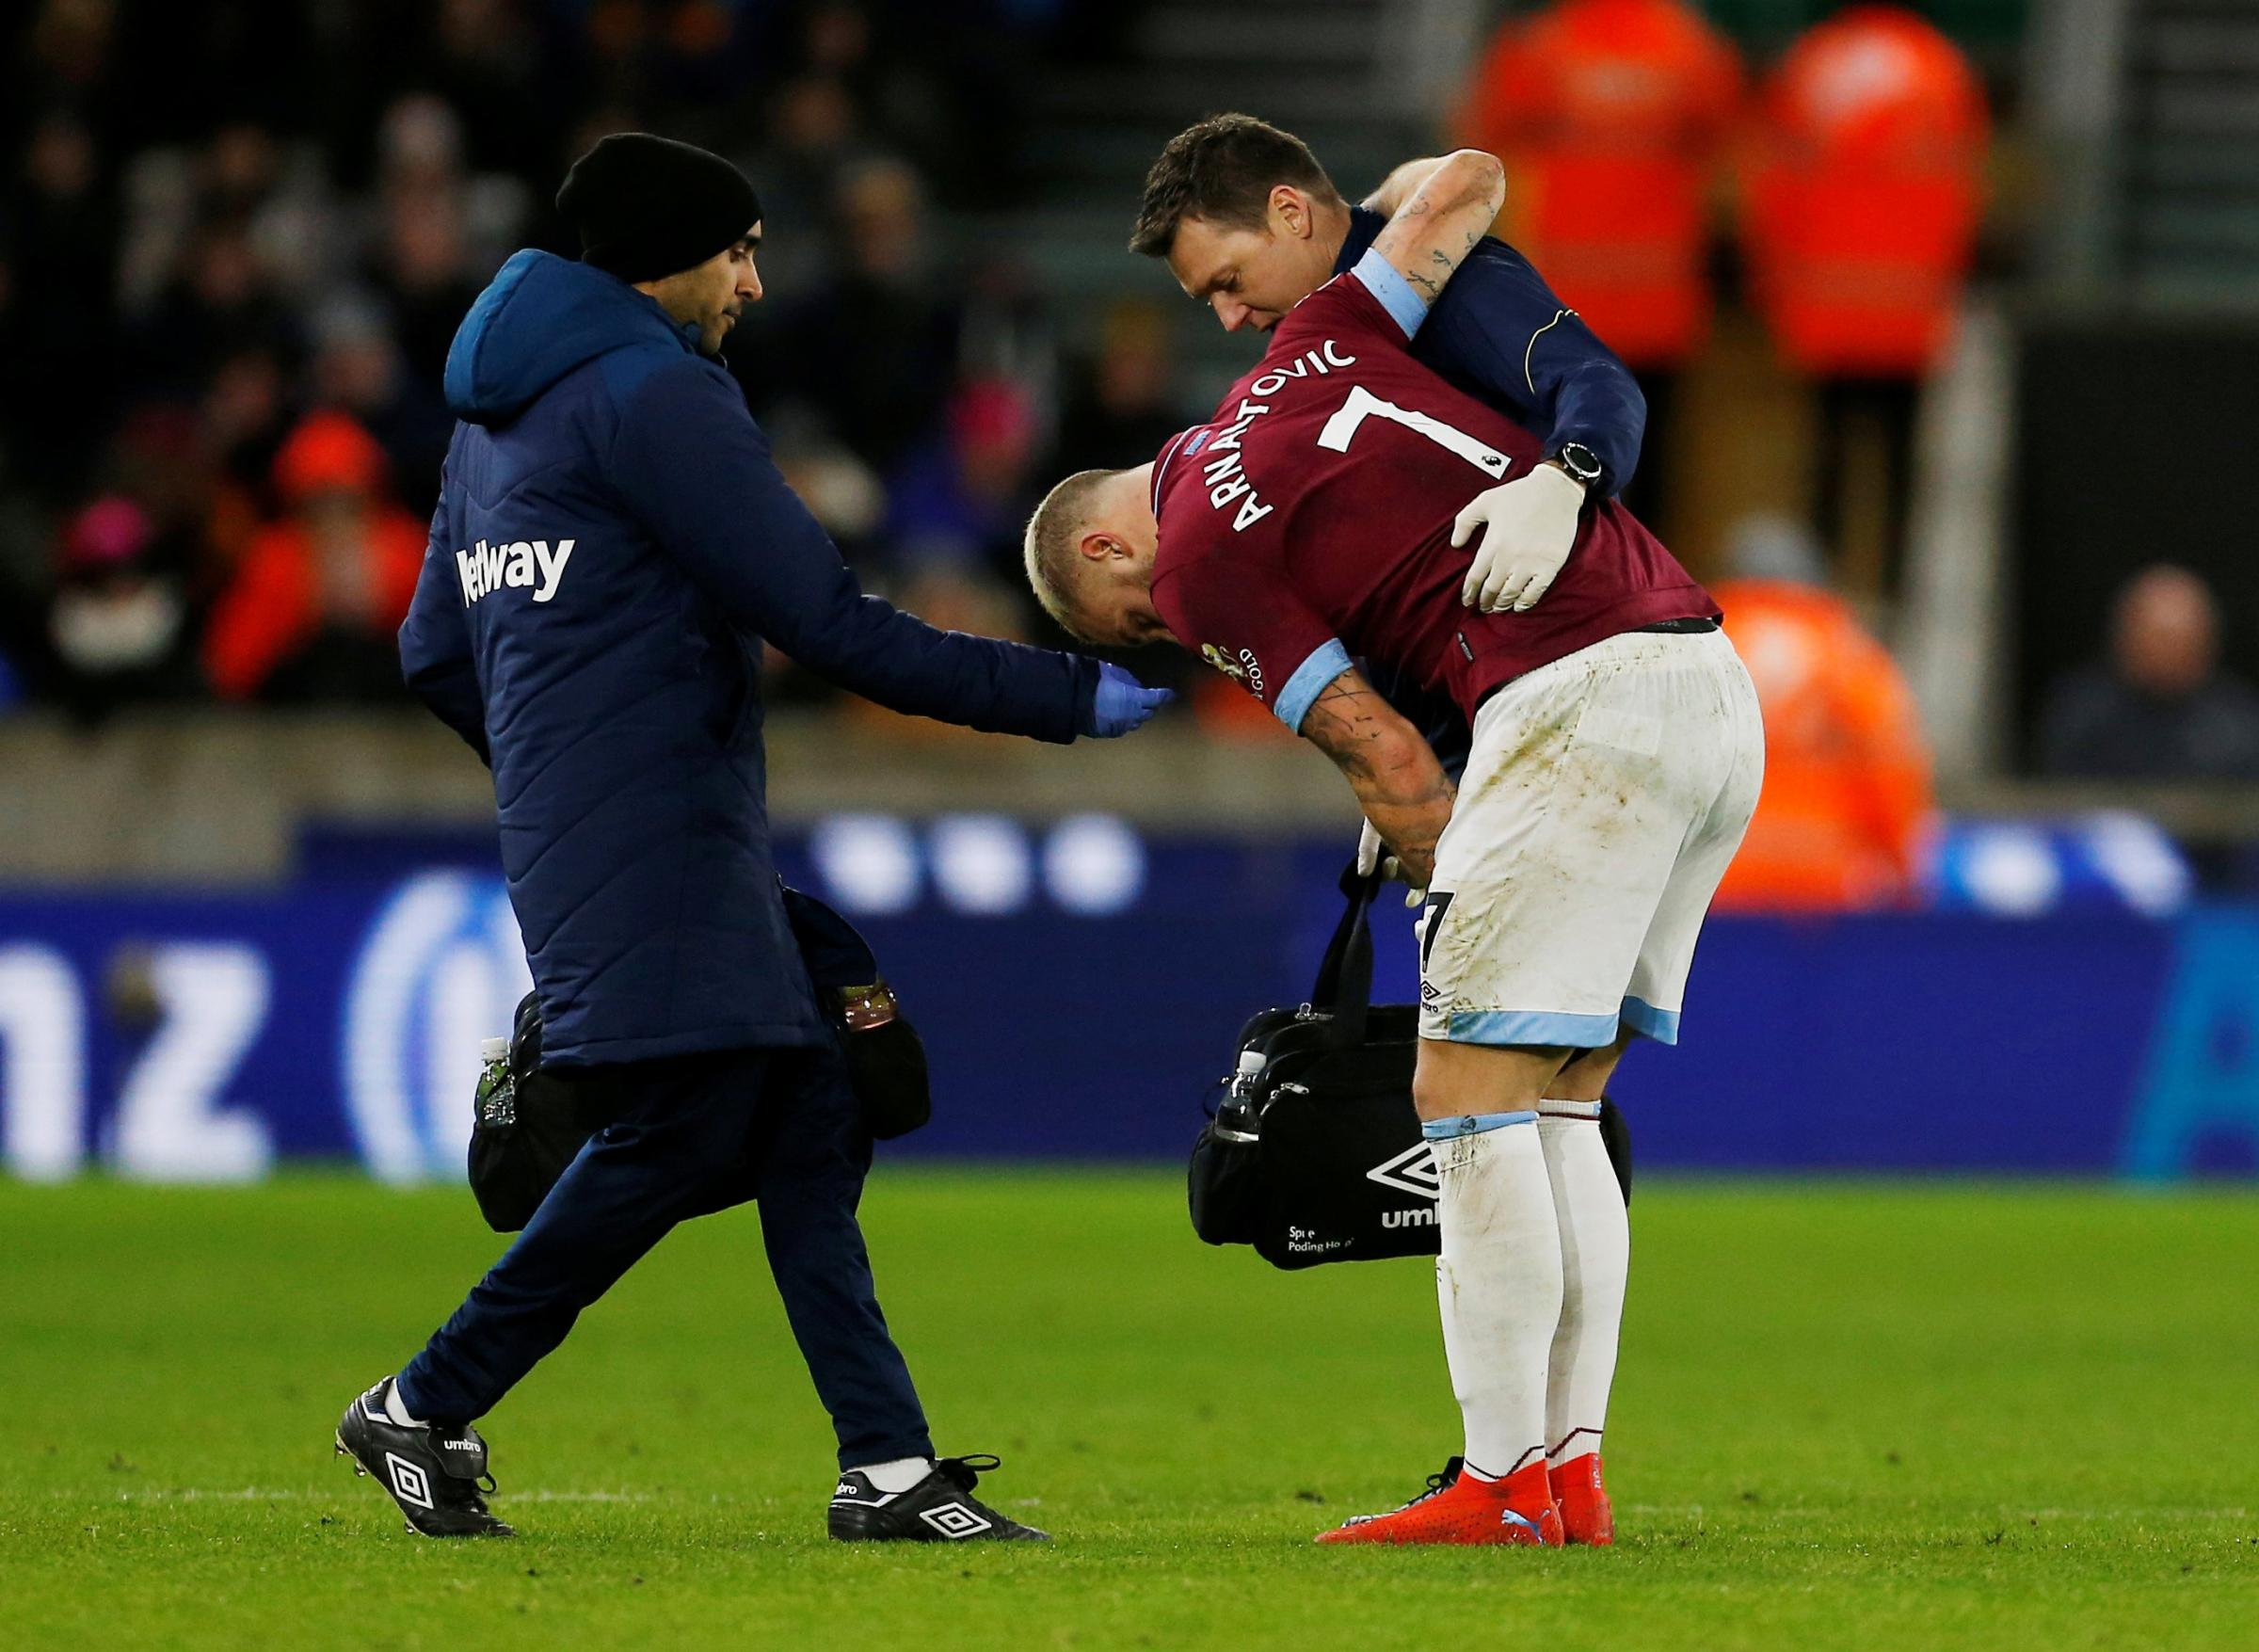 The injured Marko Arnautovic receives treatment. Picture: Action Images